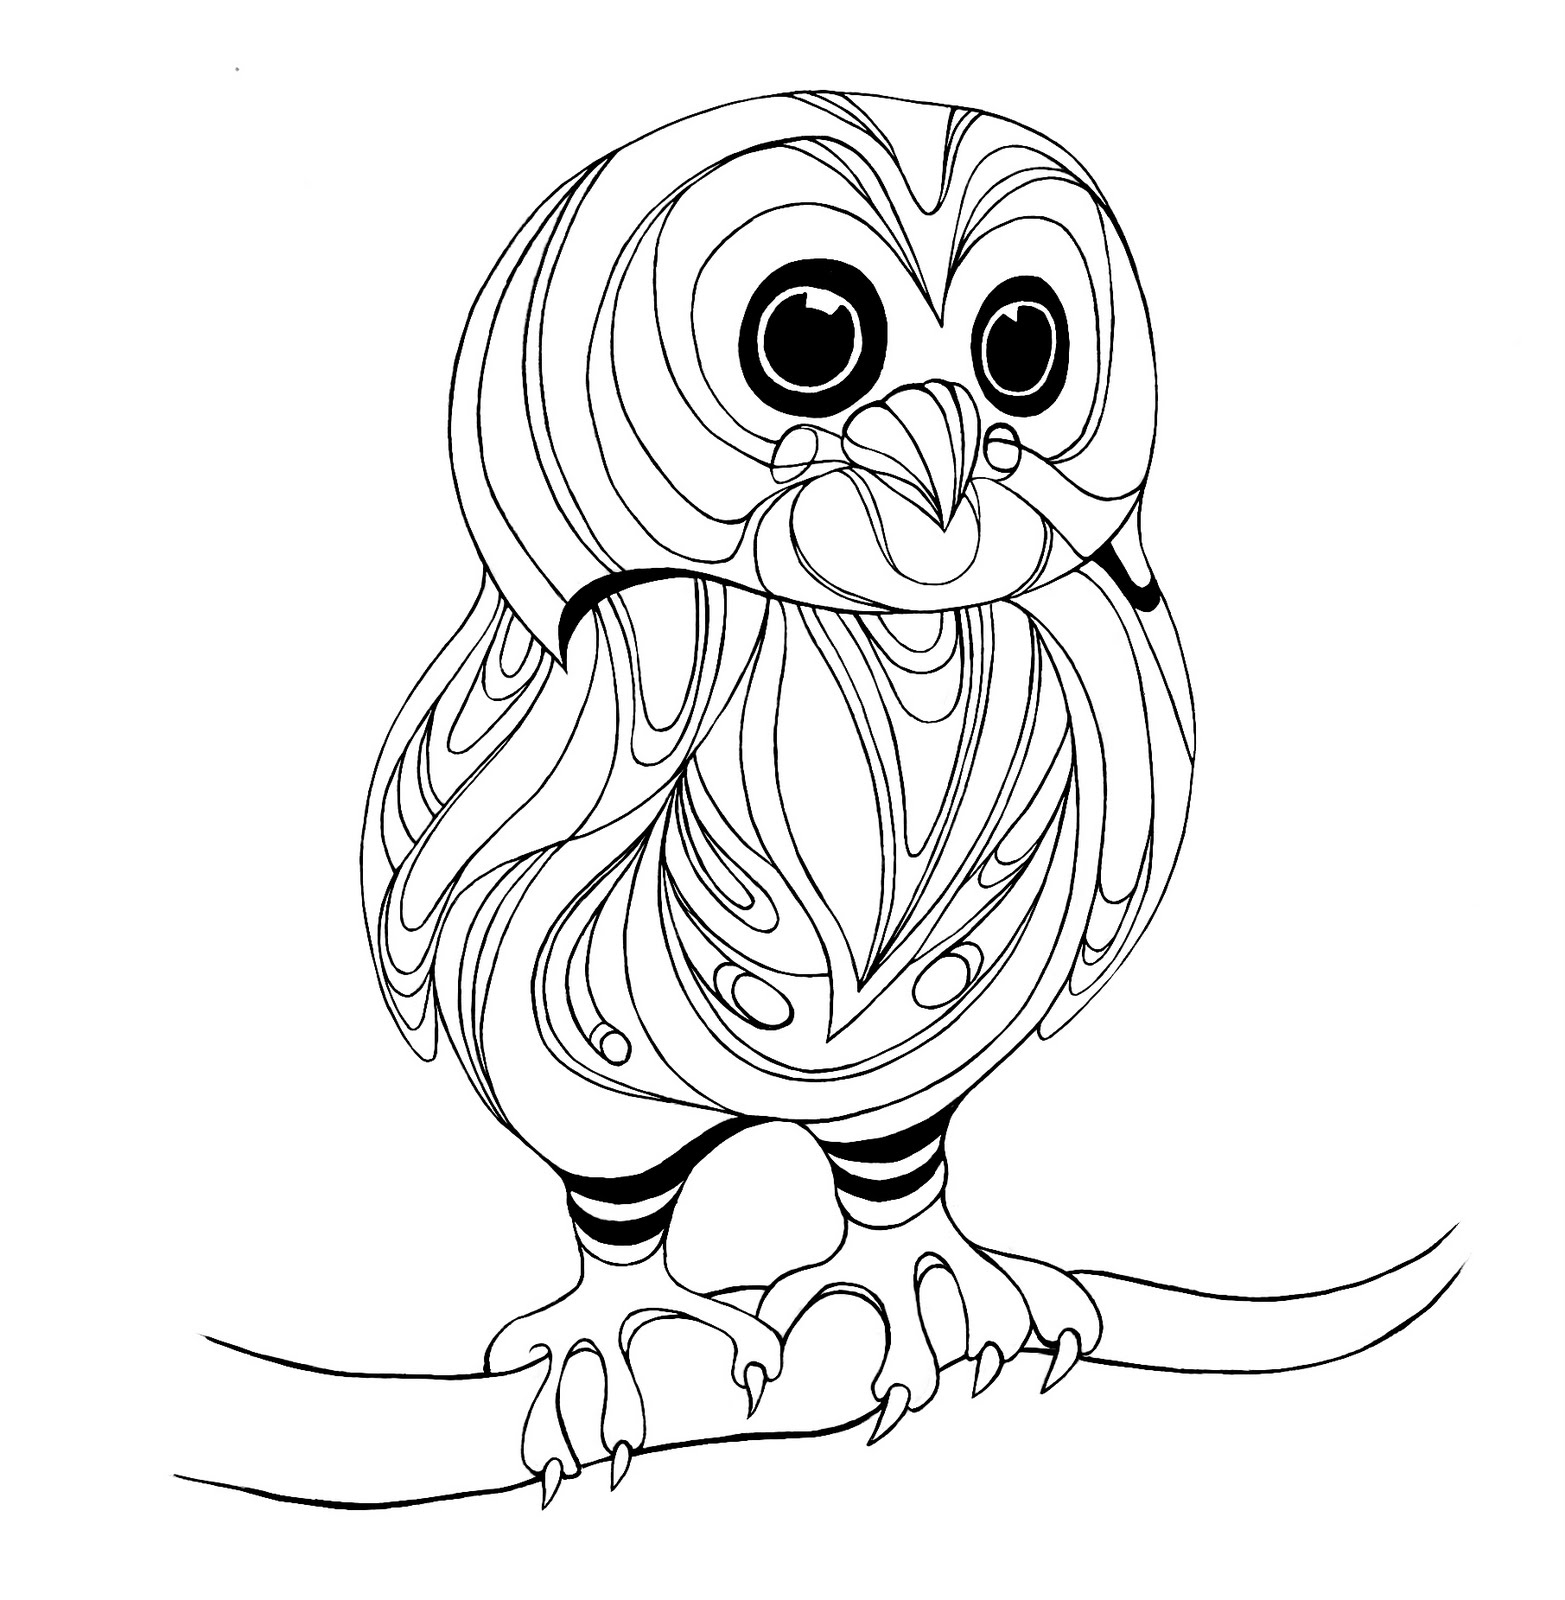 owl color sheets owl raw drawing owls adult coloring pages sheets color owl